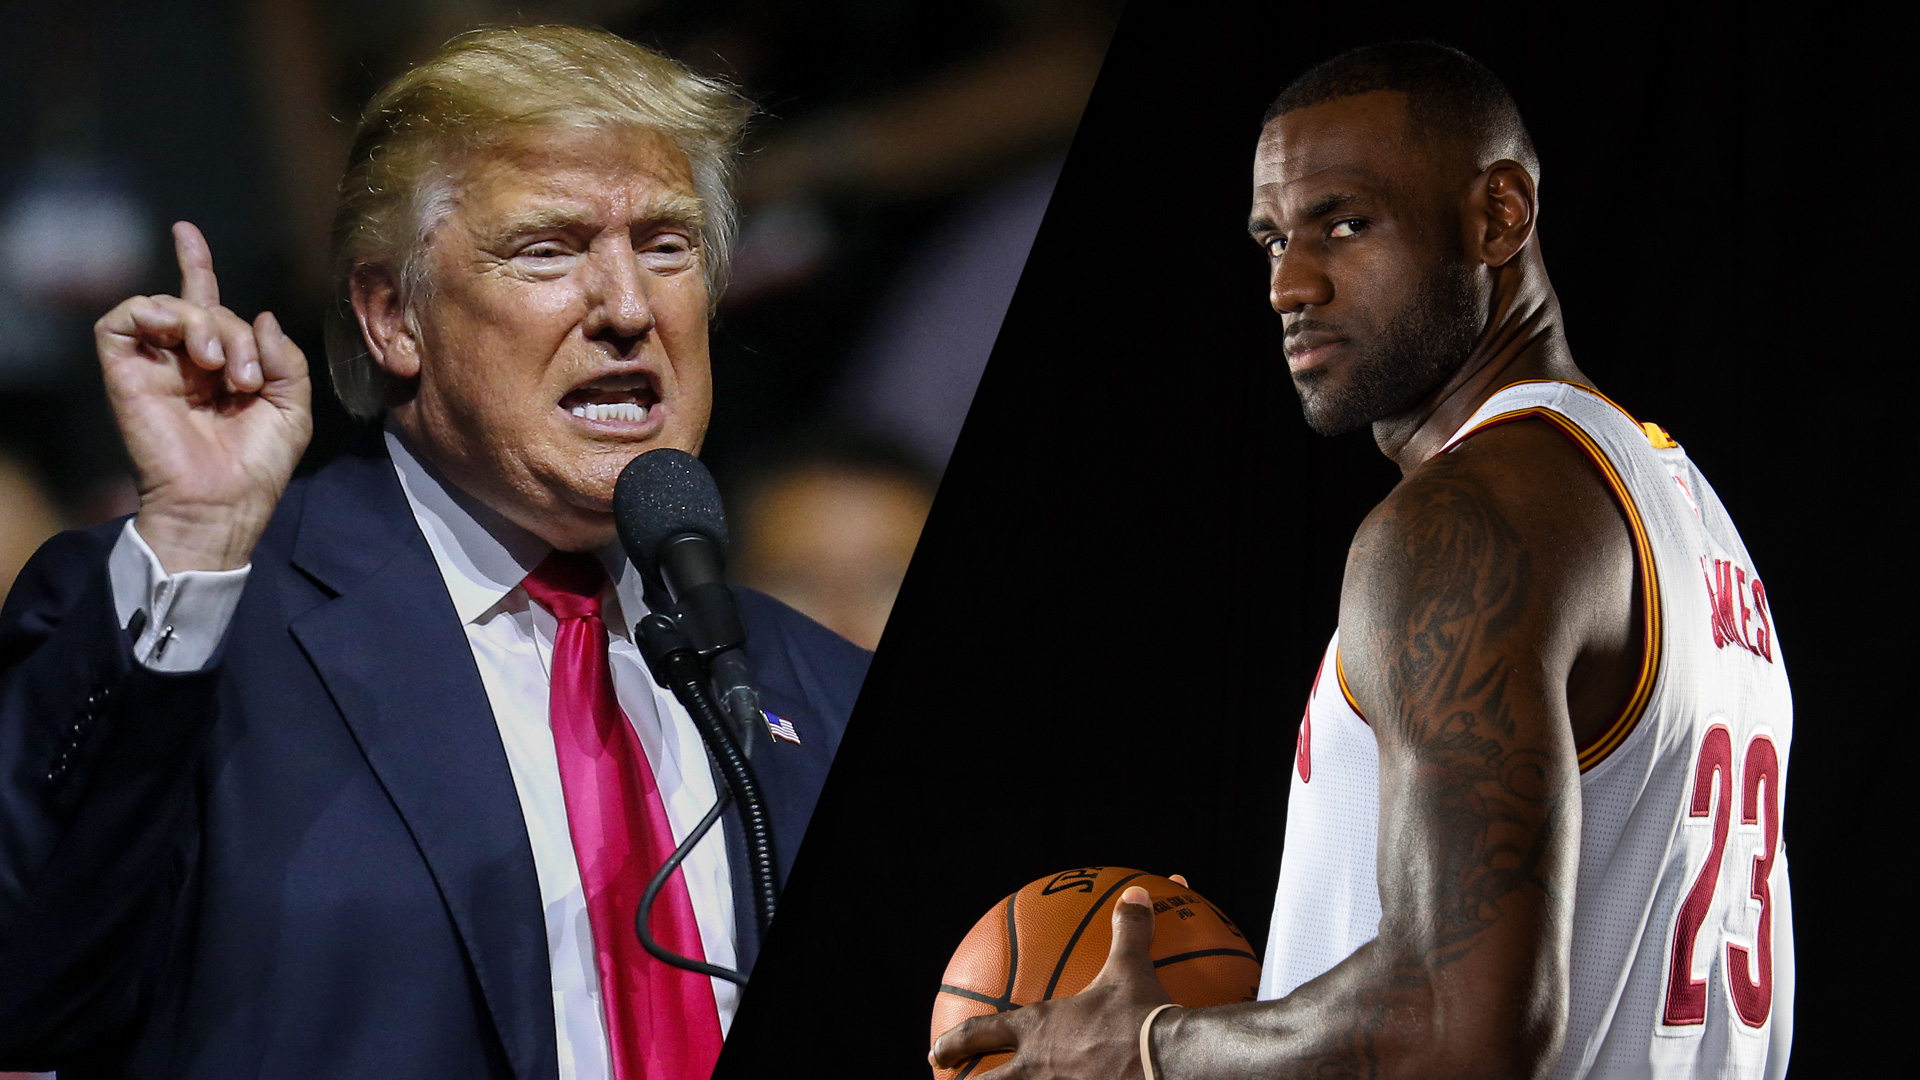 LeBron James acusa a Trump de